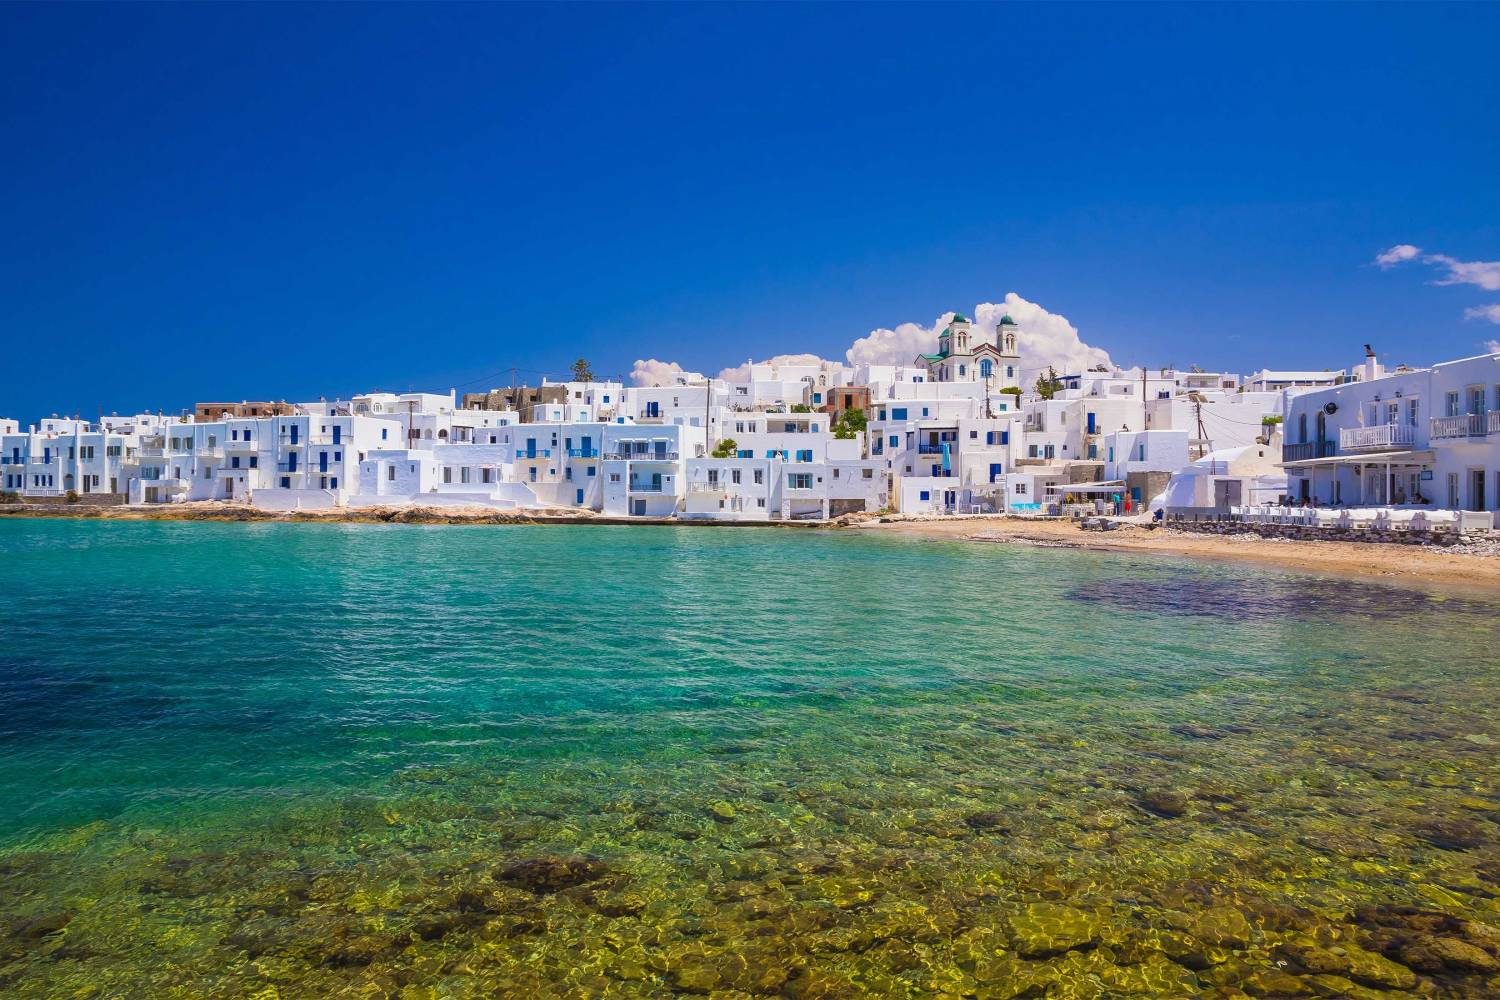 Enjoy a private chef after an amazing day in Paros - Take a Chef